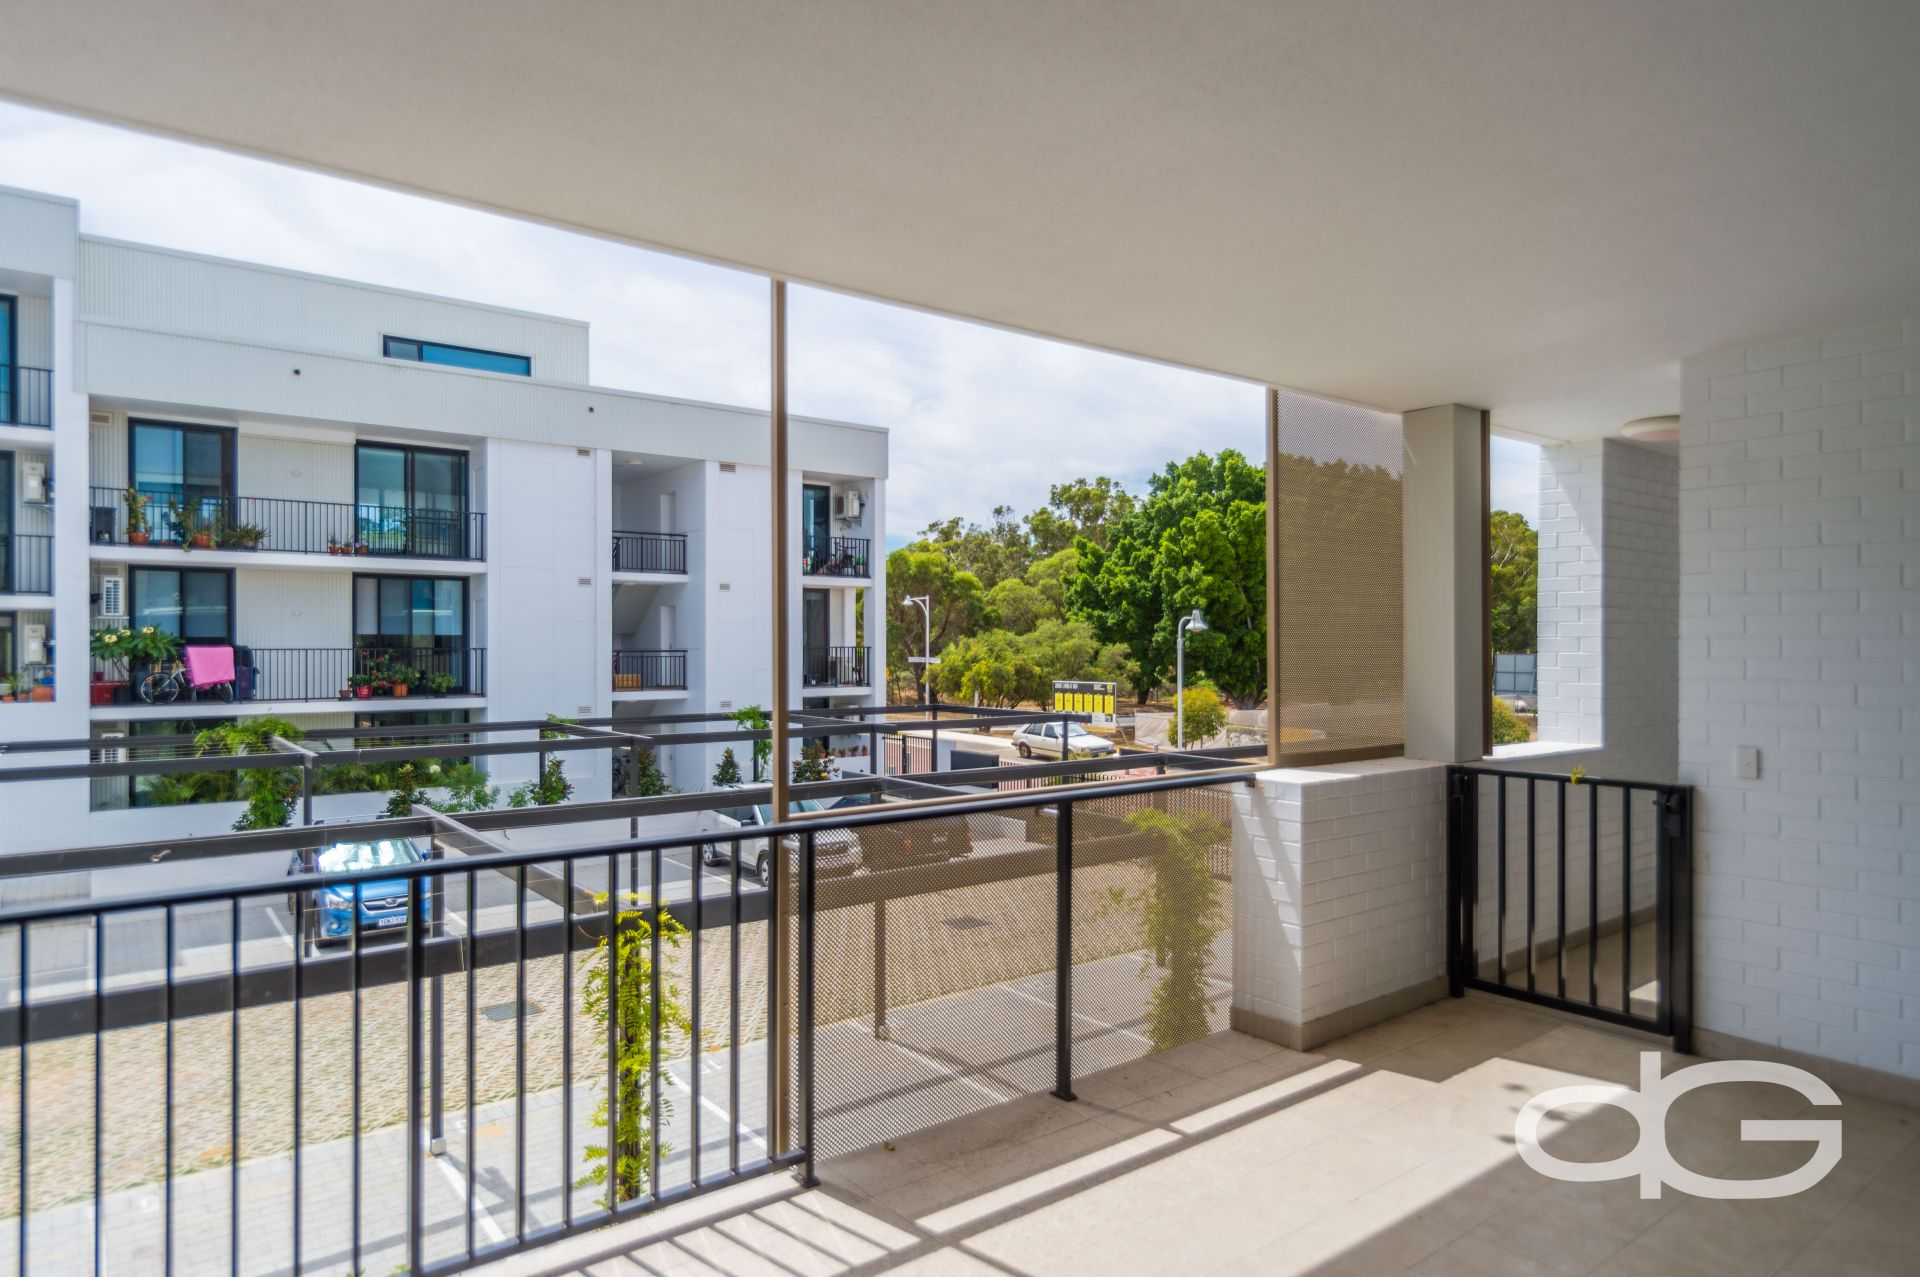 15/2 Beazley Way, White Gum Valley